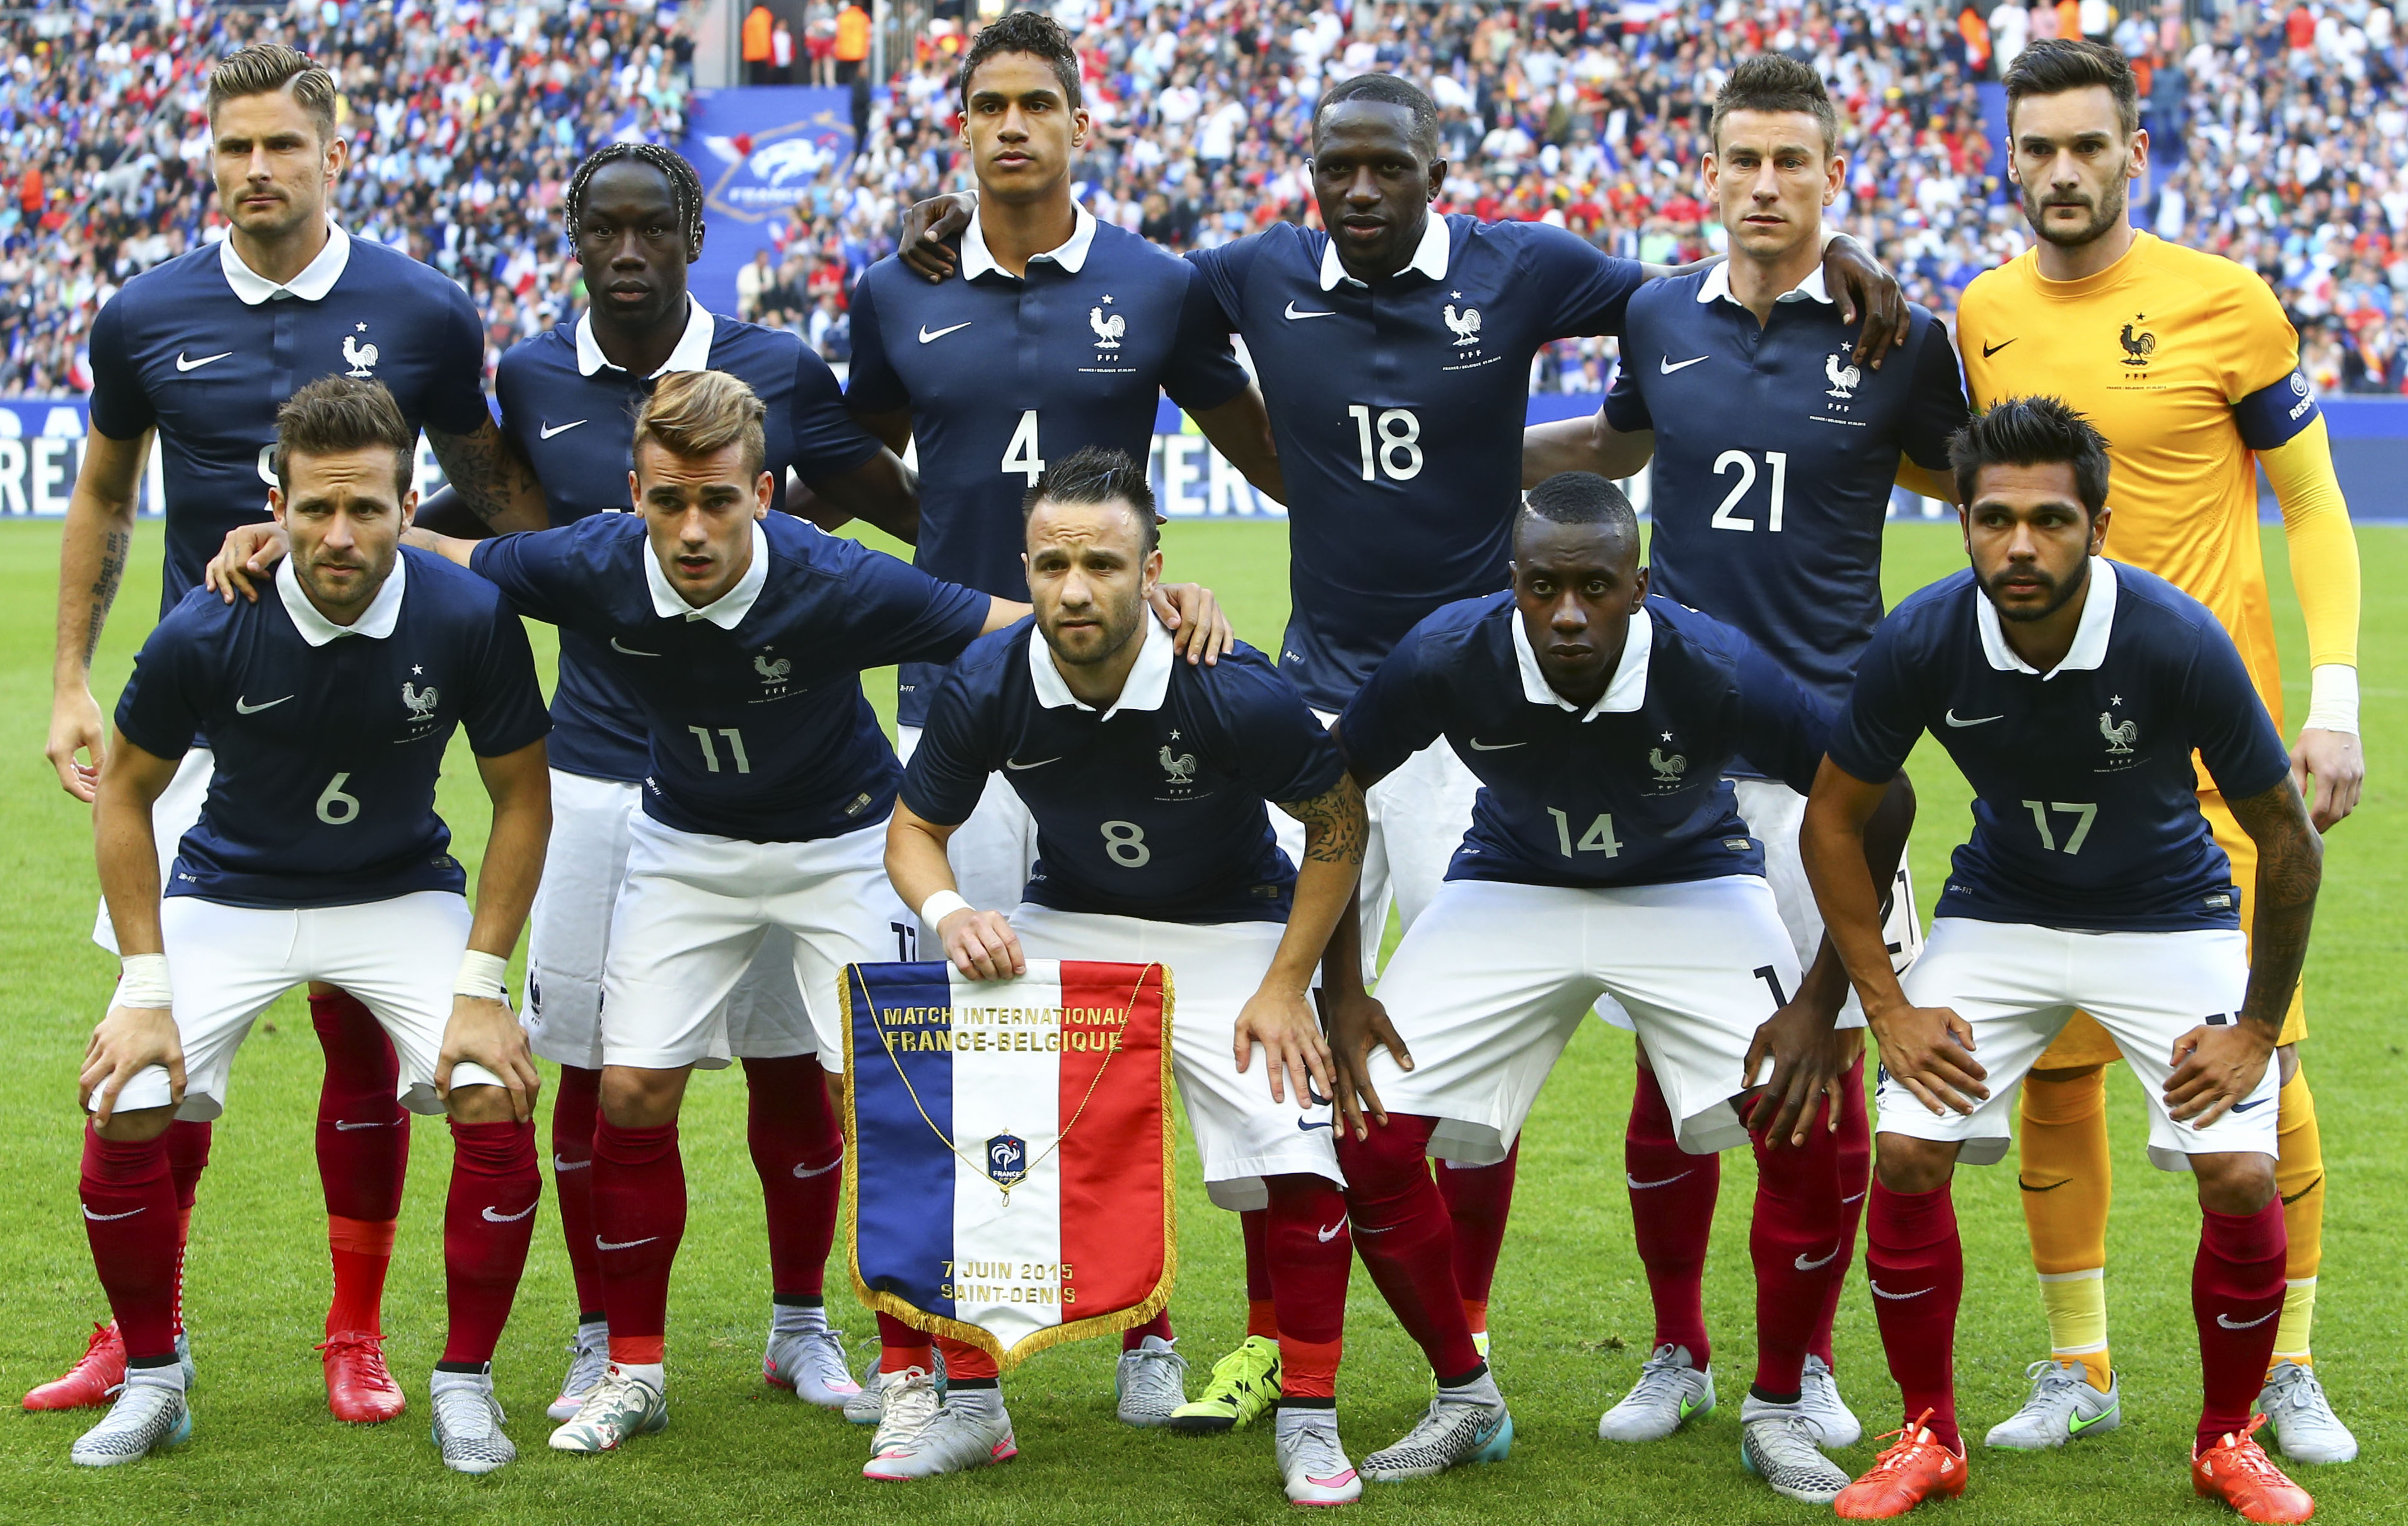 equipe de france de football - Photo